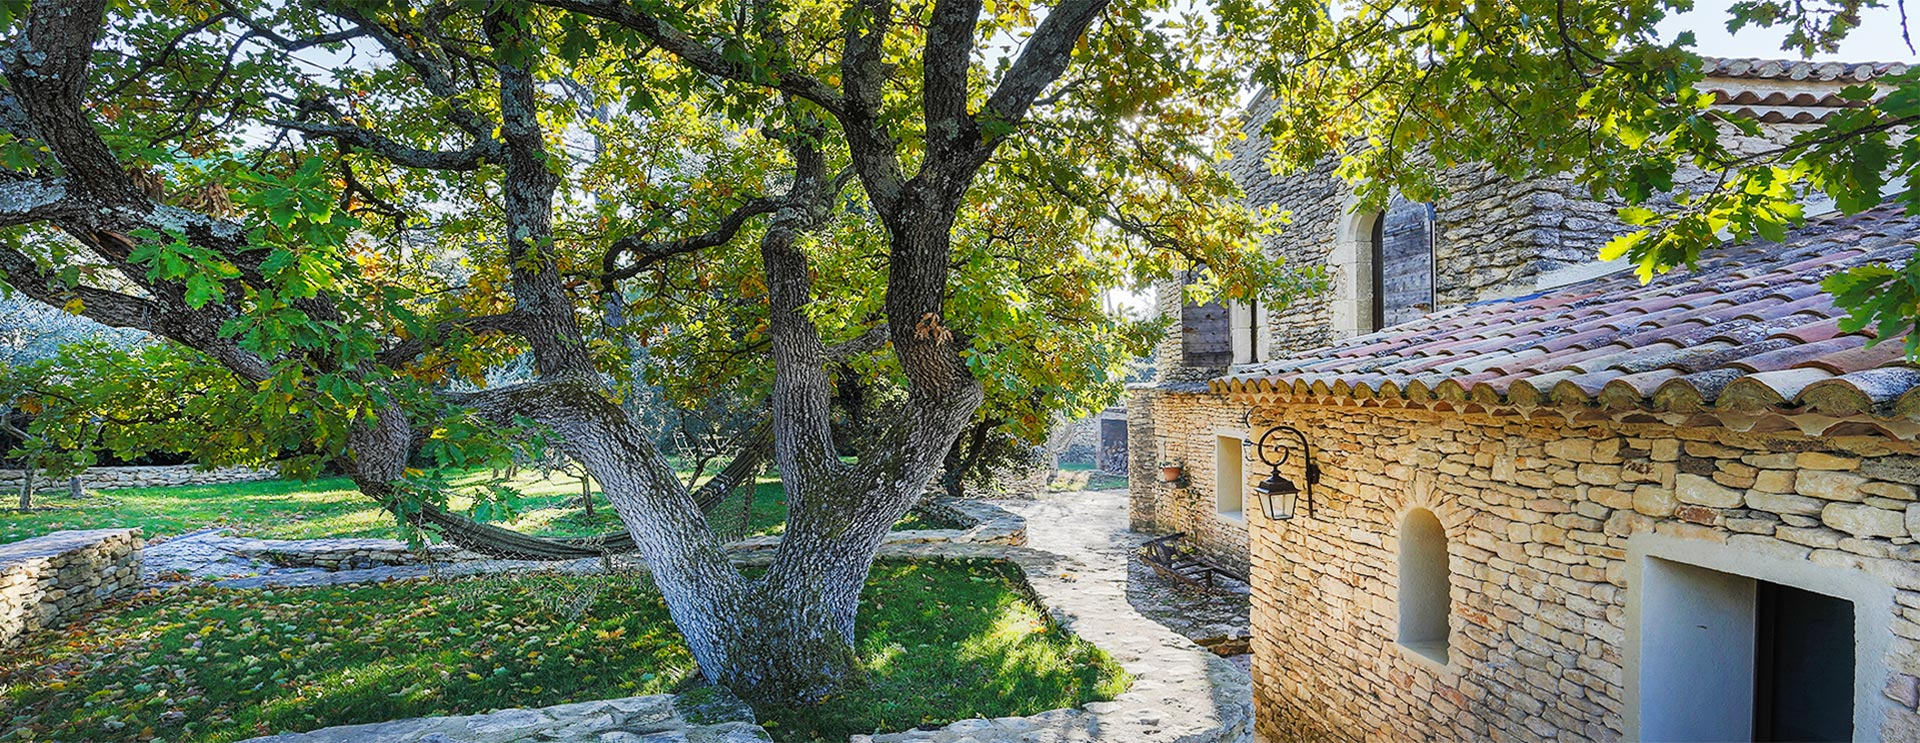 Real Estate in Provence, in the Alpilles and Luberon.